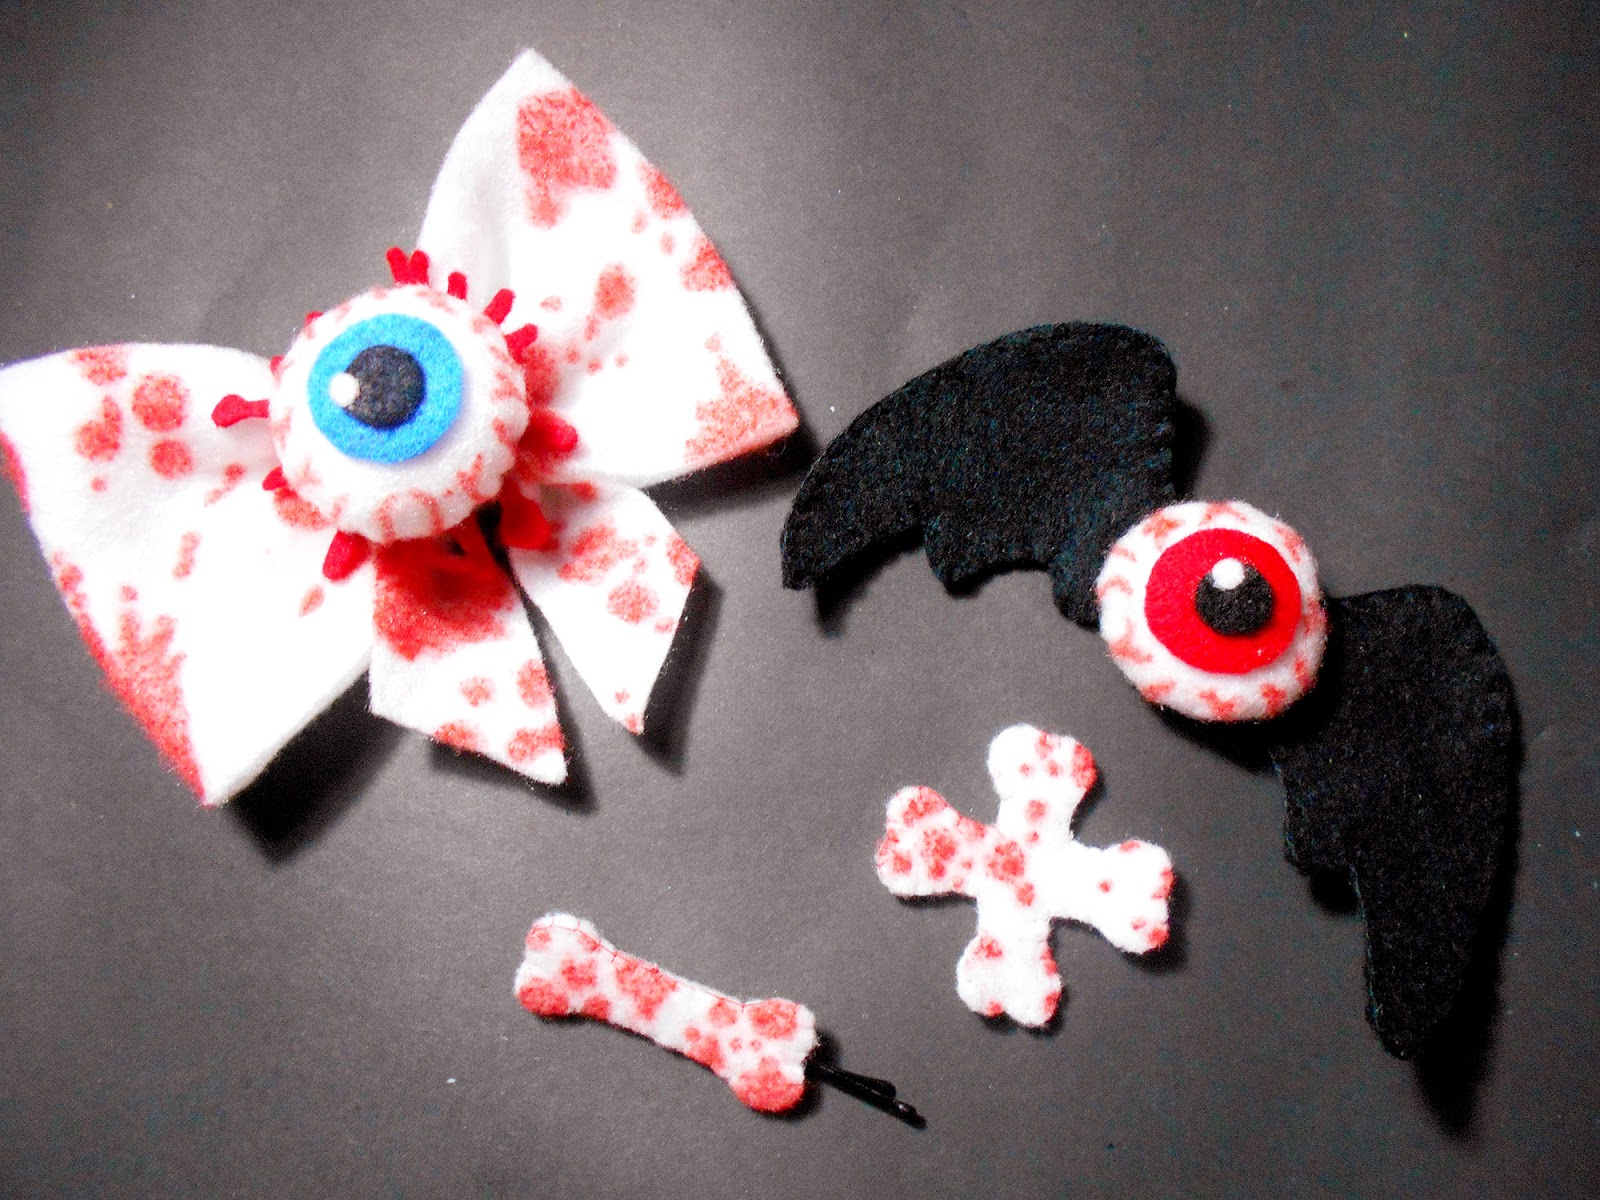 DIY Scary Halloween Ideas for Accessories